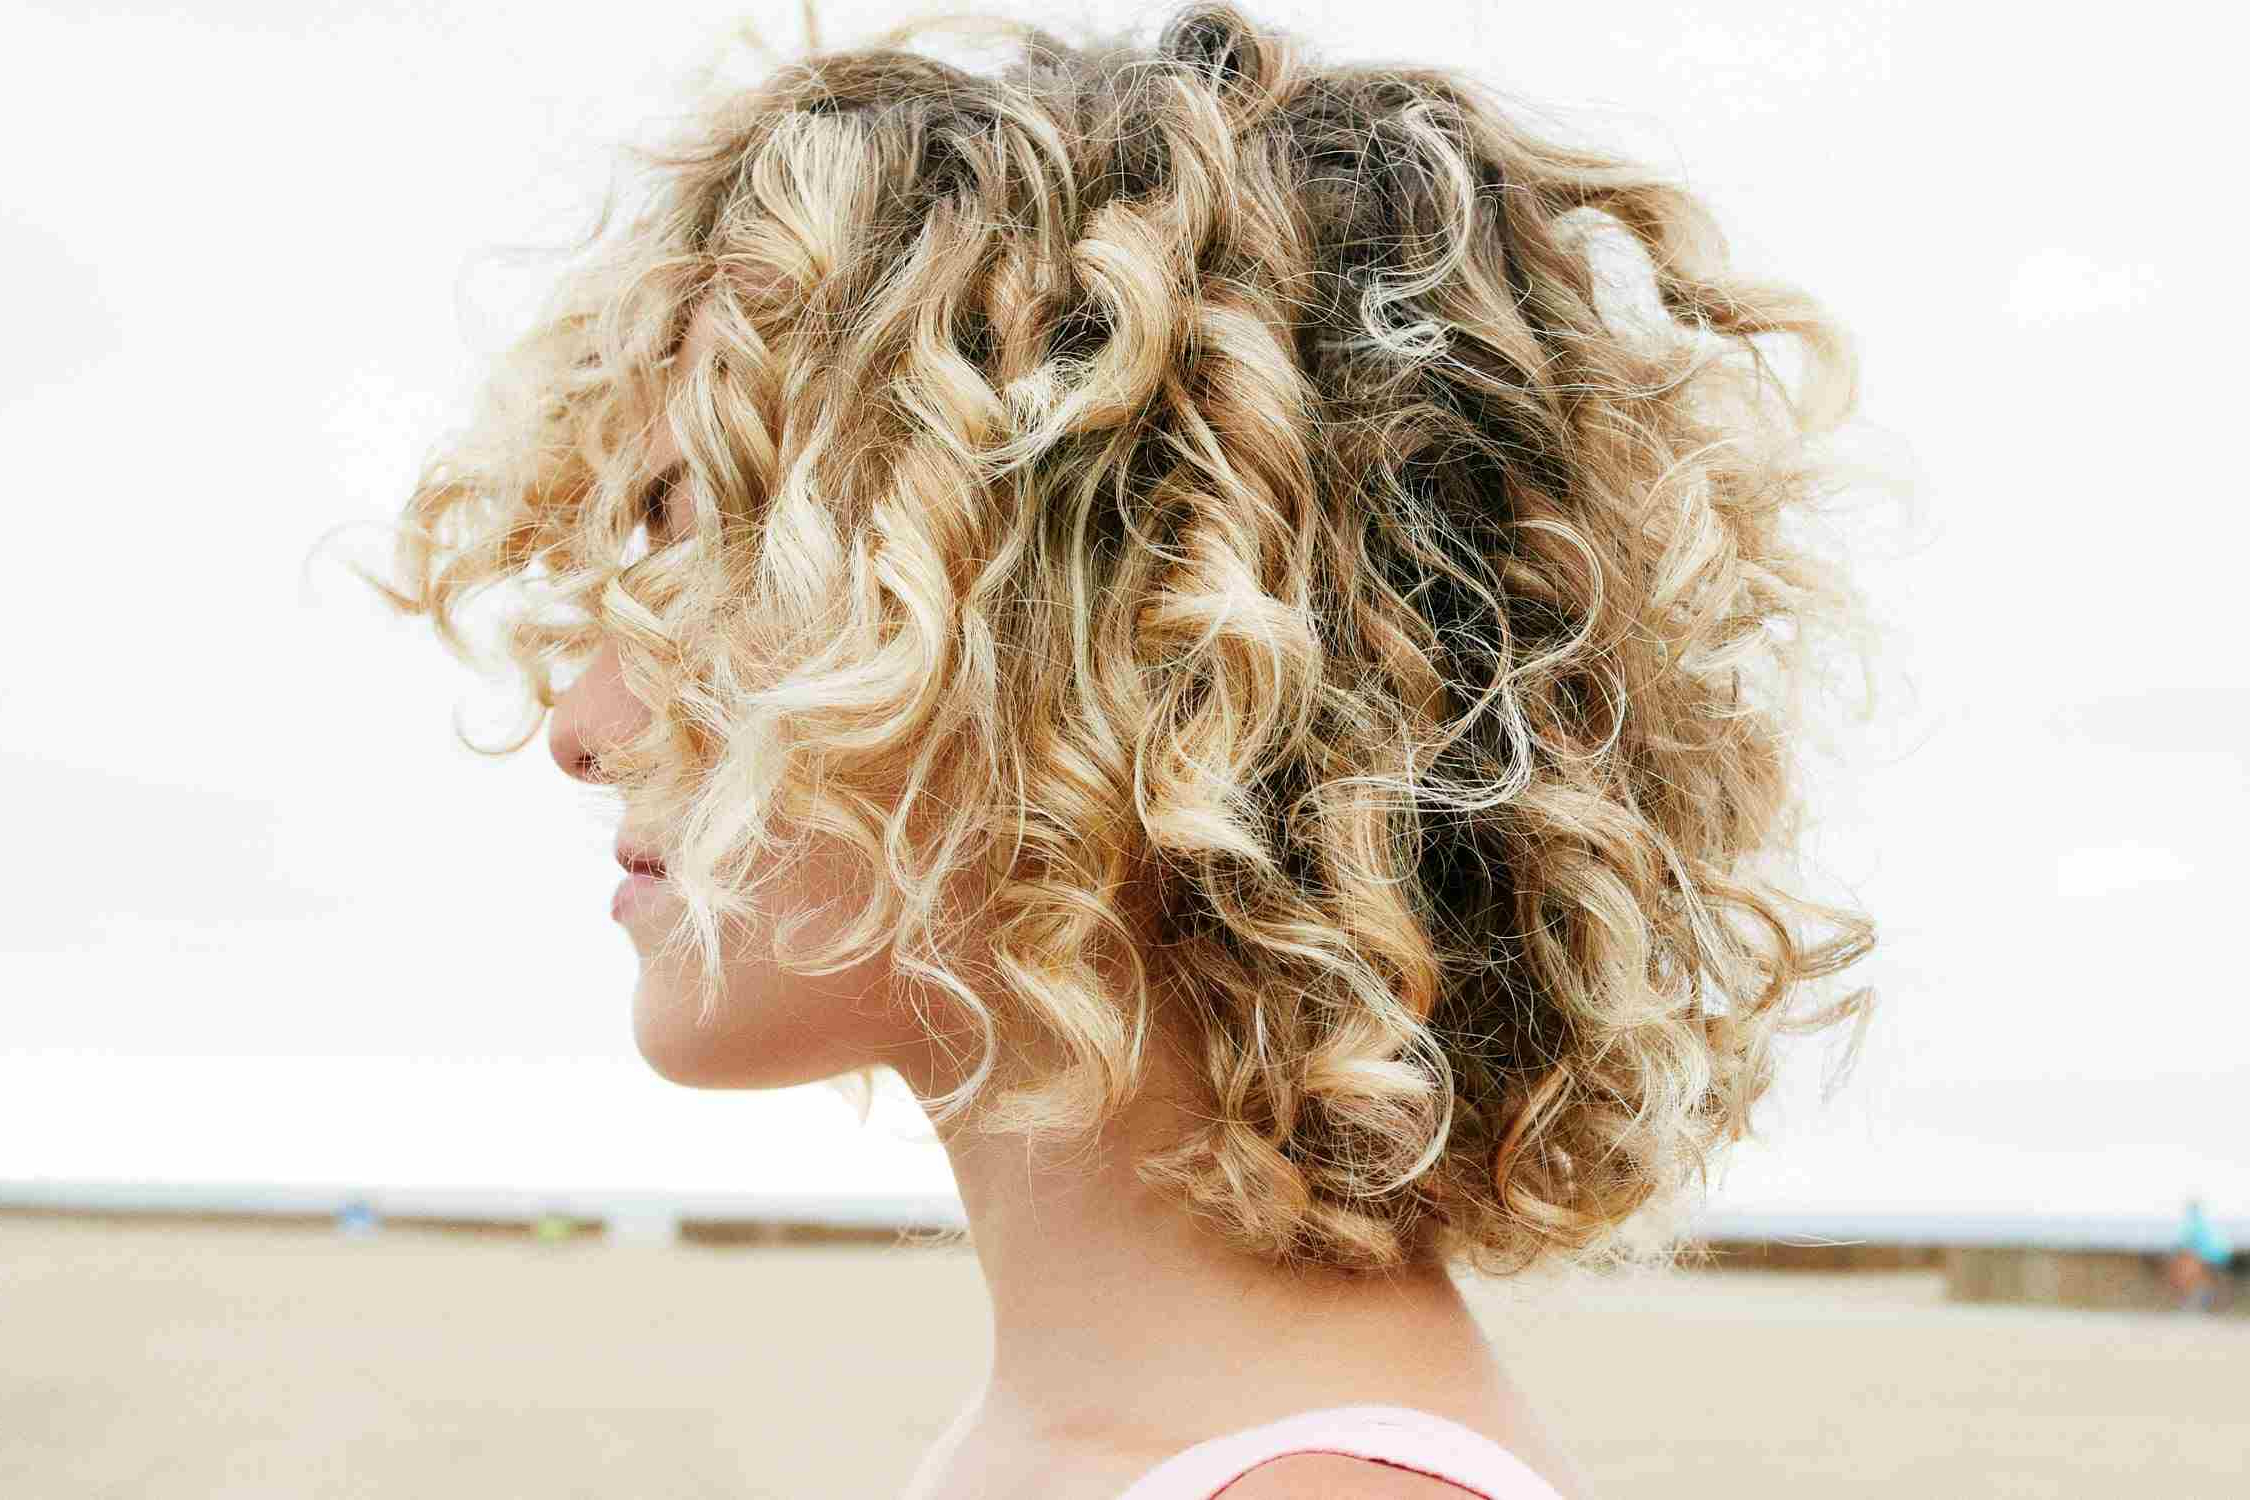 How To Get A Perm You Won't Hate For 2019 Loose Spiral Braid Hairstyles (View 6 of 20)